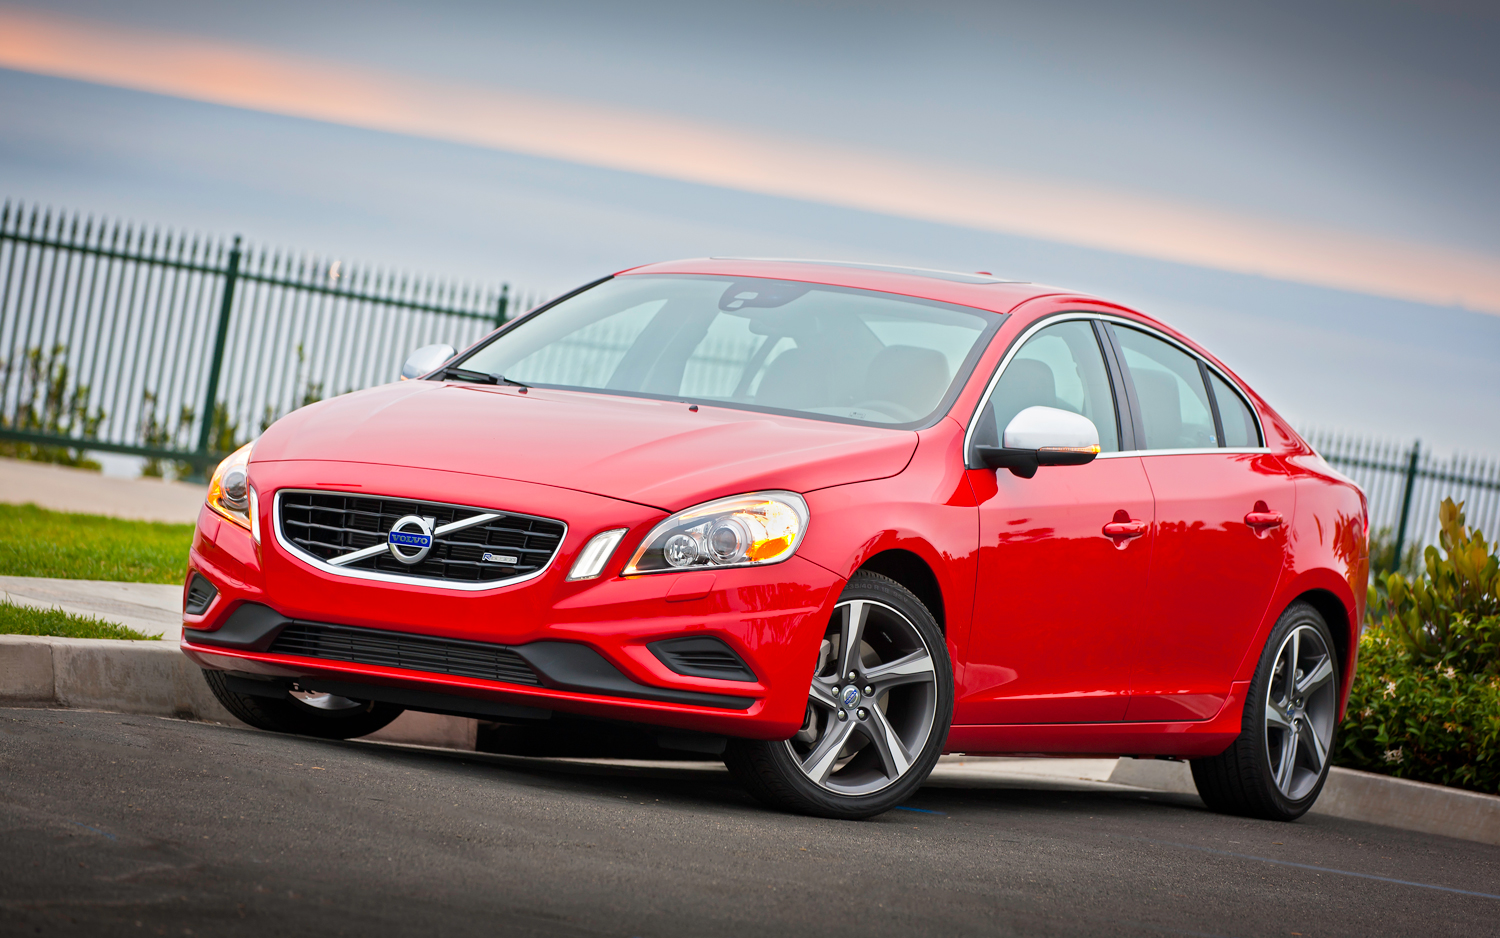 2012 volvo v60 f pictures information and specs auto. Black Bedroom Furniture Sets. Home Design Ideas